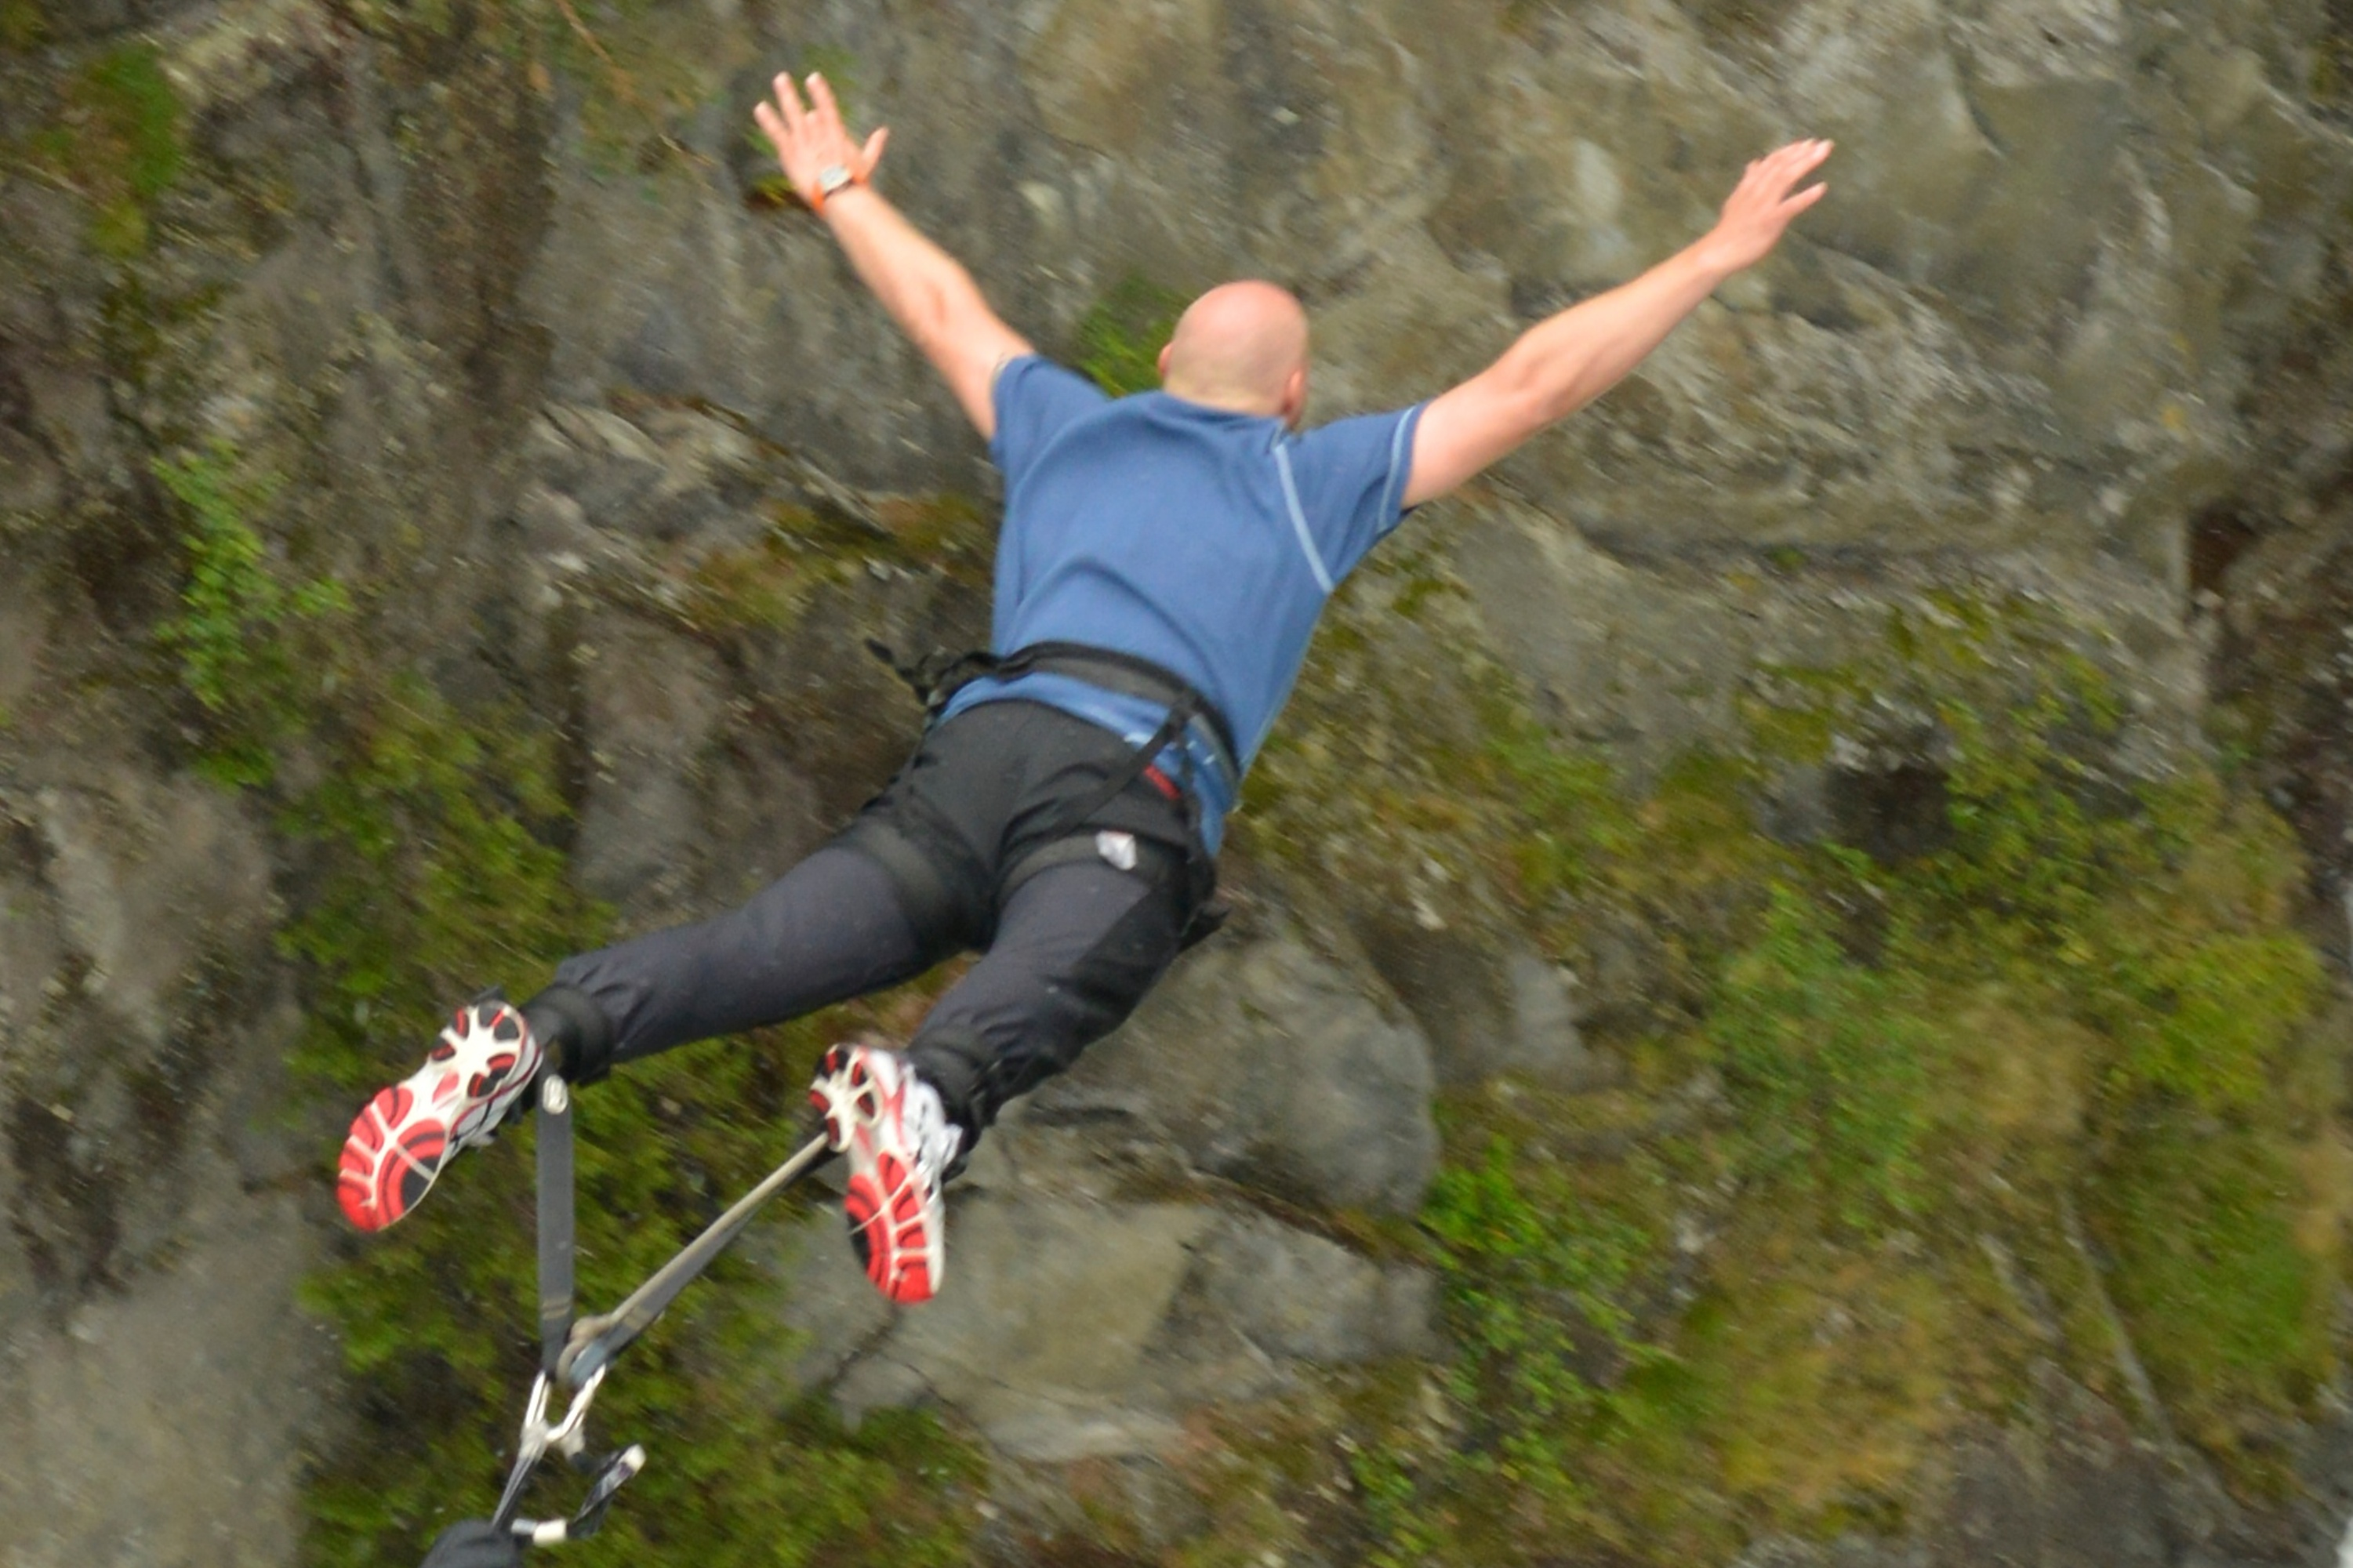 Norway's toughest bungee jump